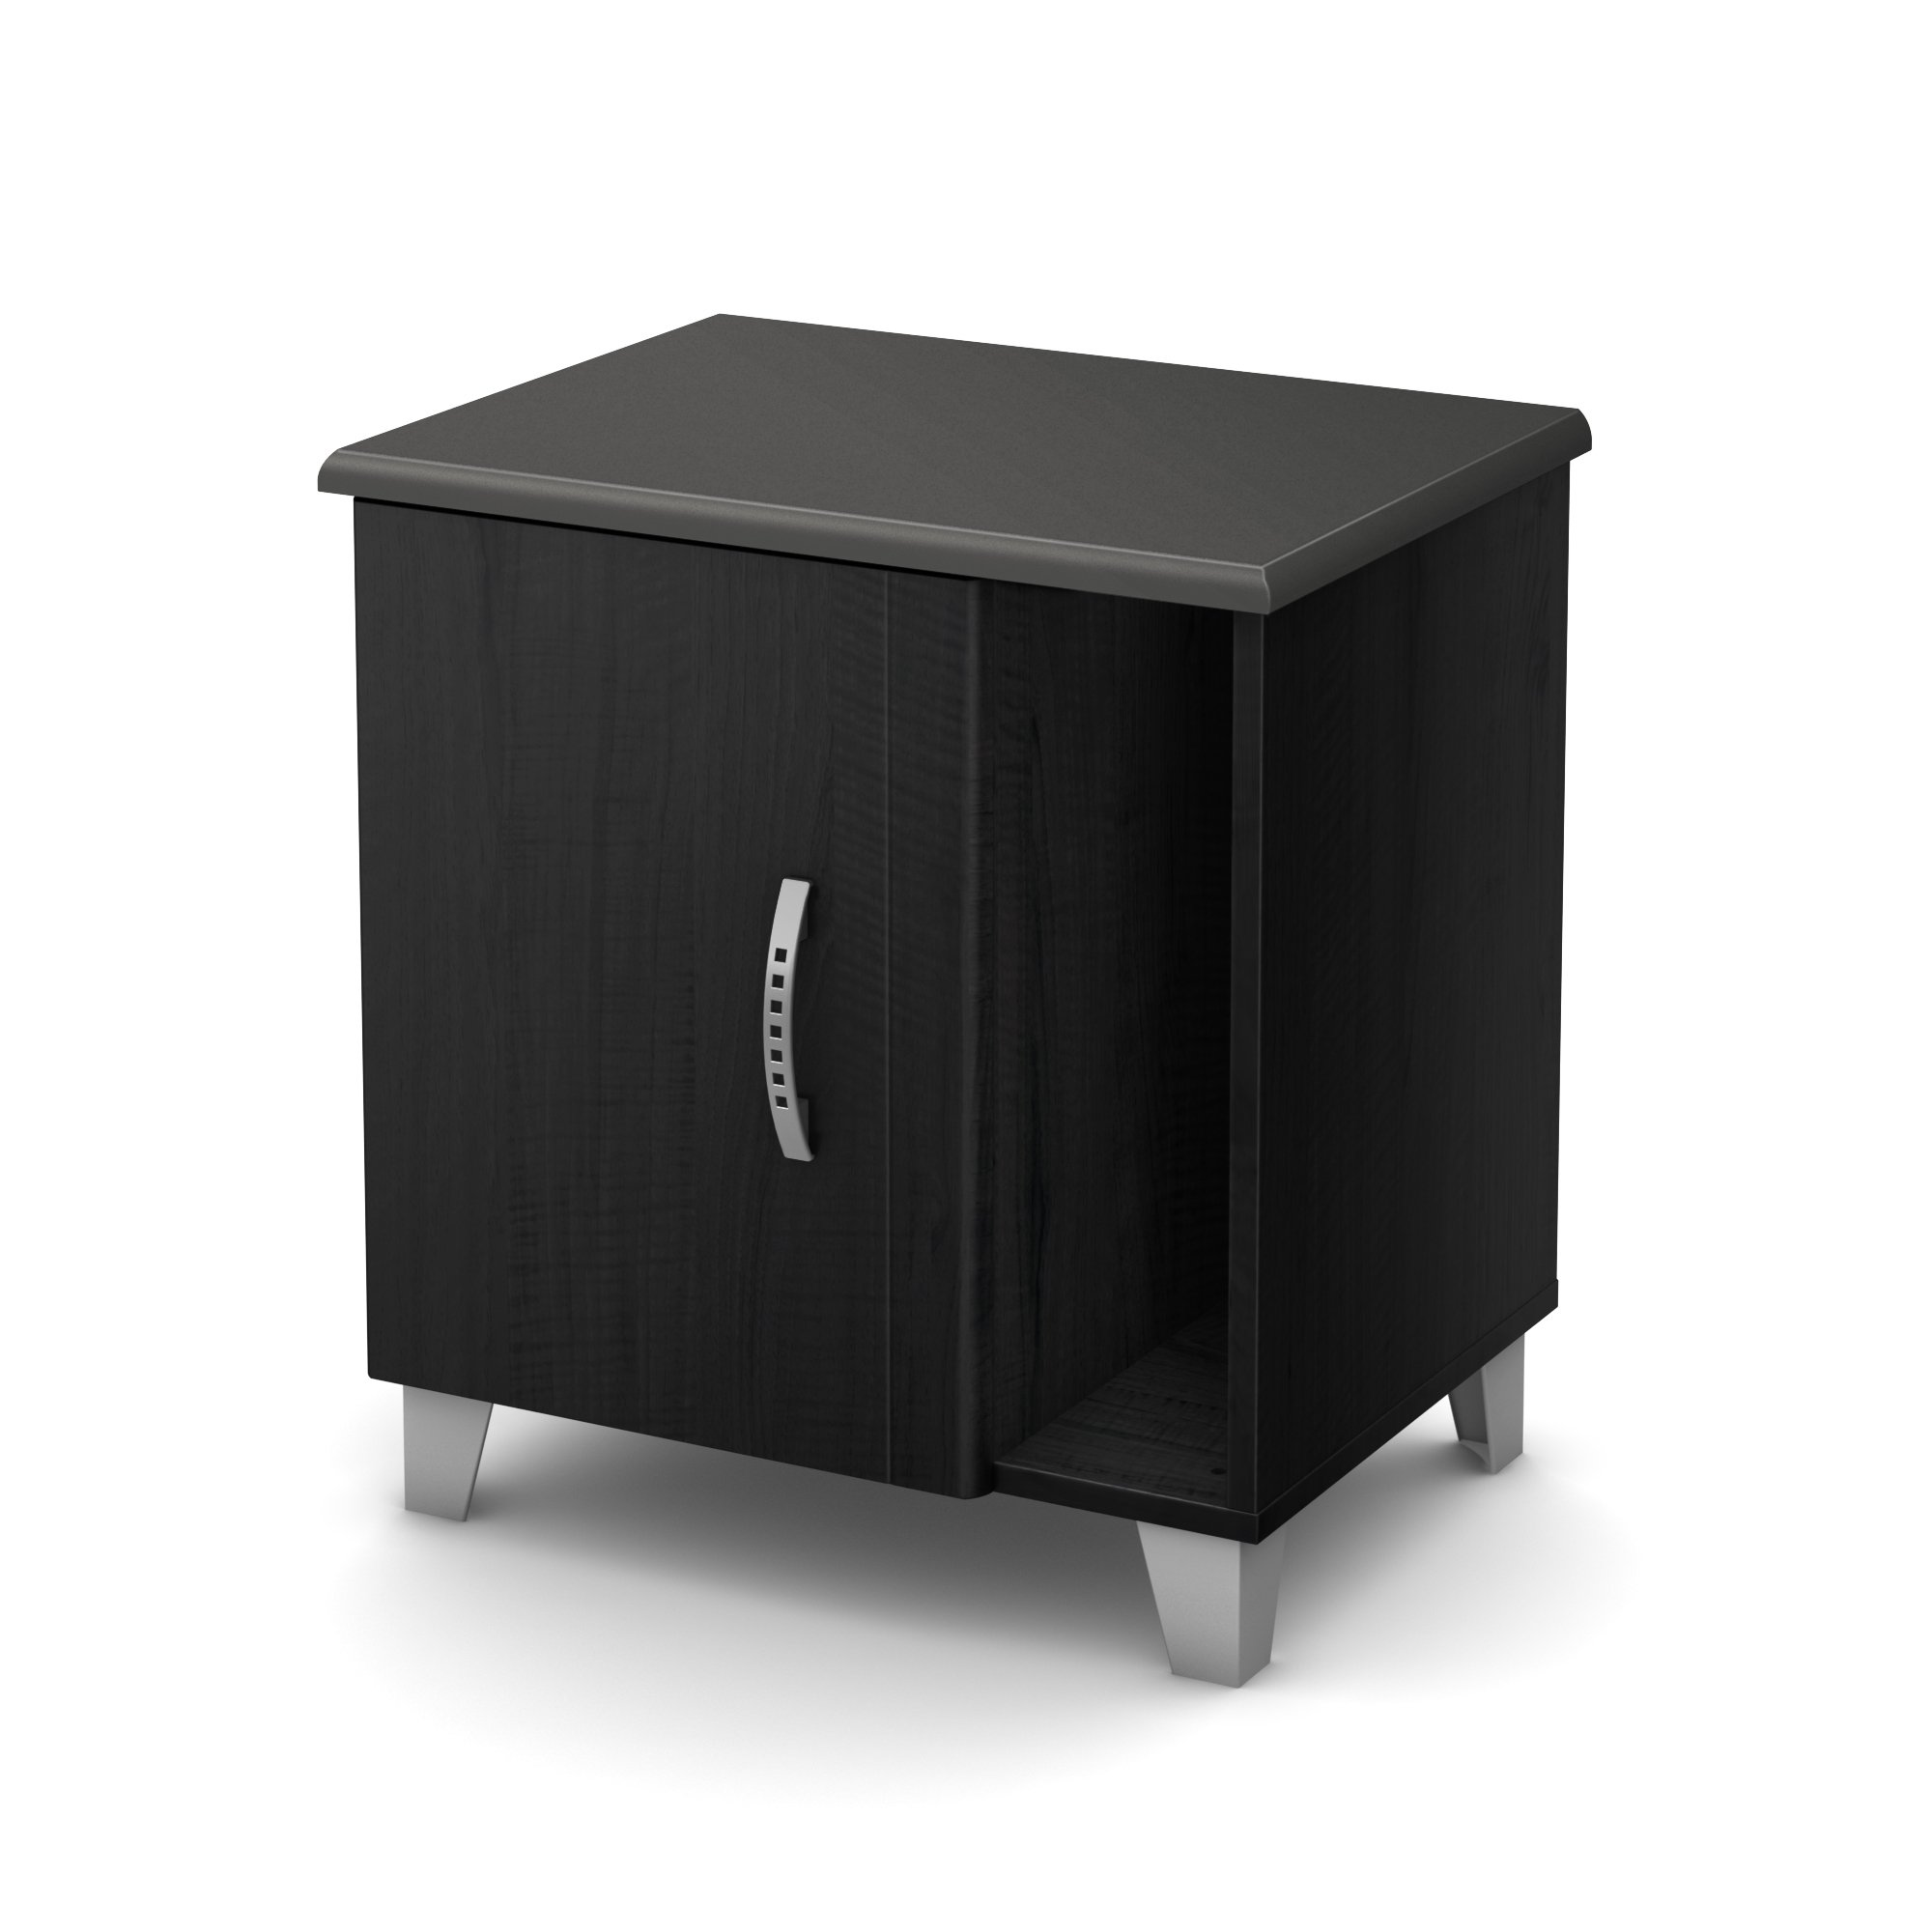 South Shore Lazer 2-Shelf Nightstand with Cabinet Door, Black Onyx with Metal Hardware